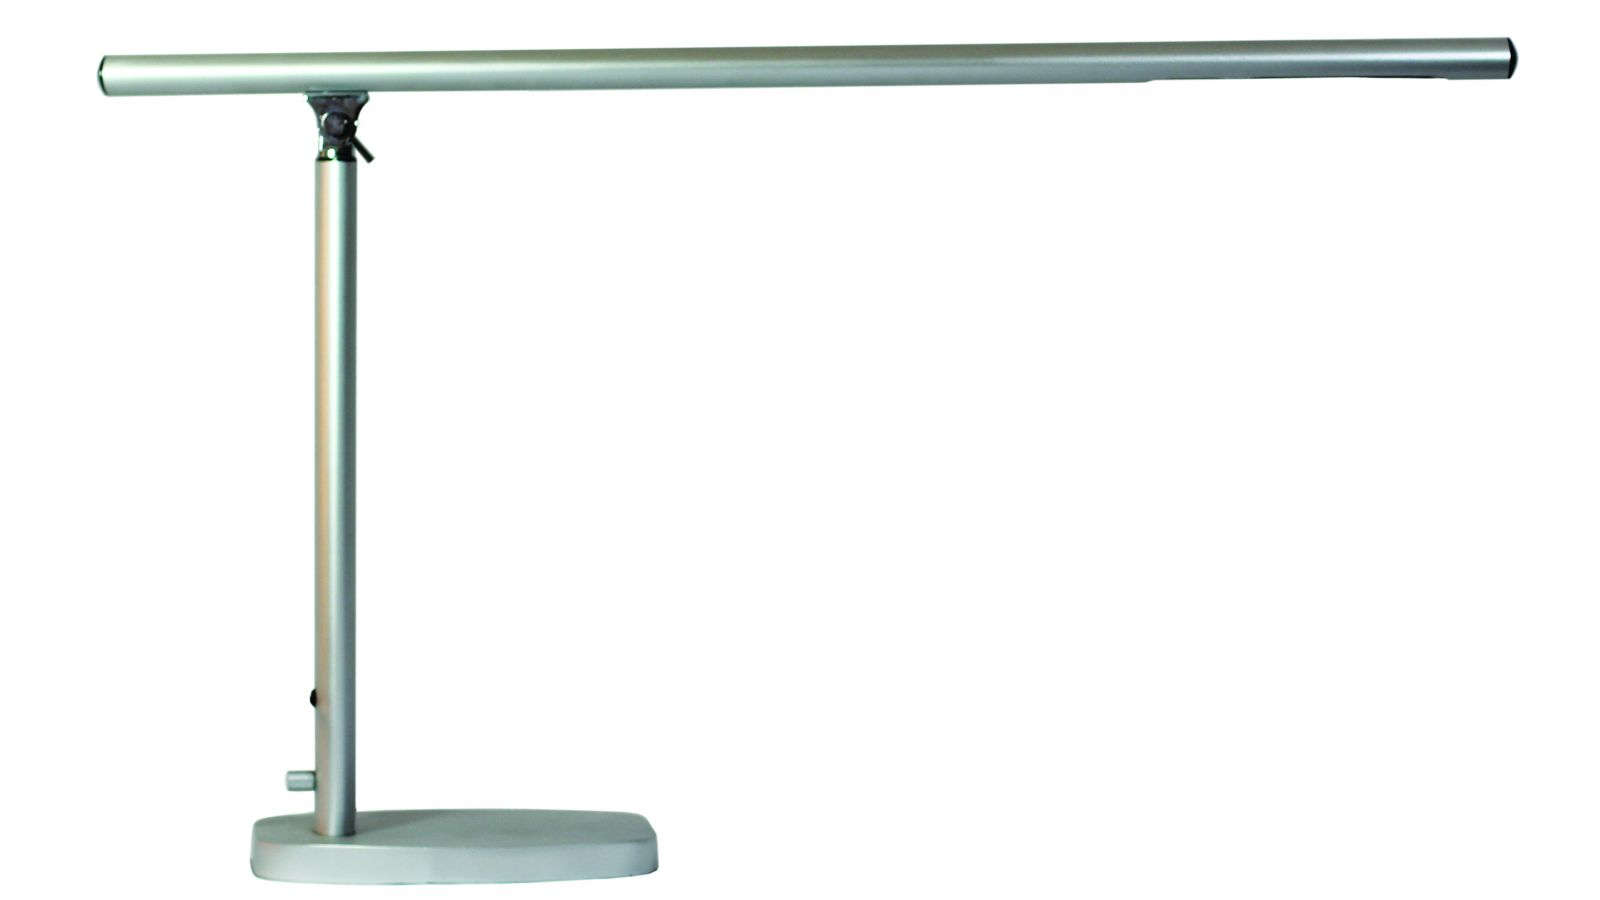 LUX Big Bar LED Task Light